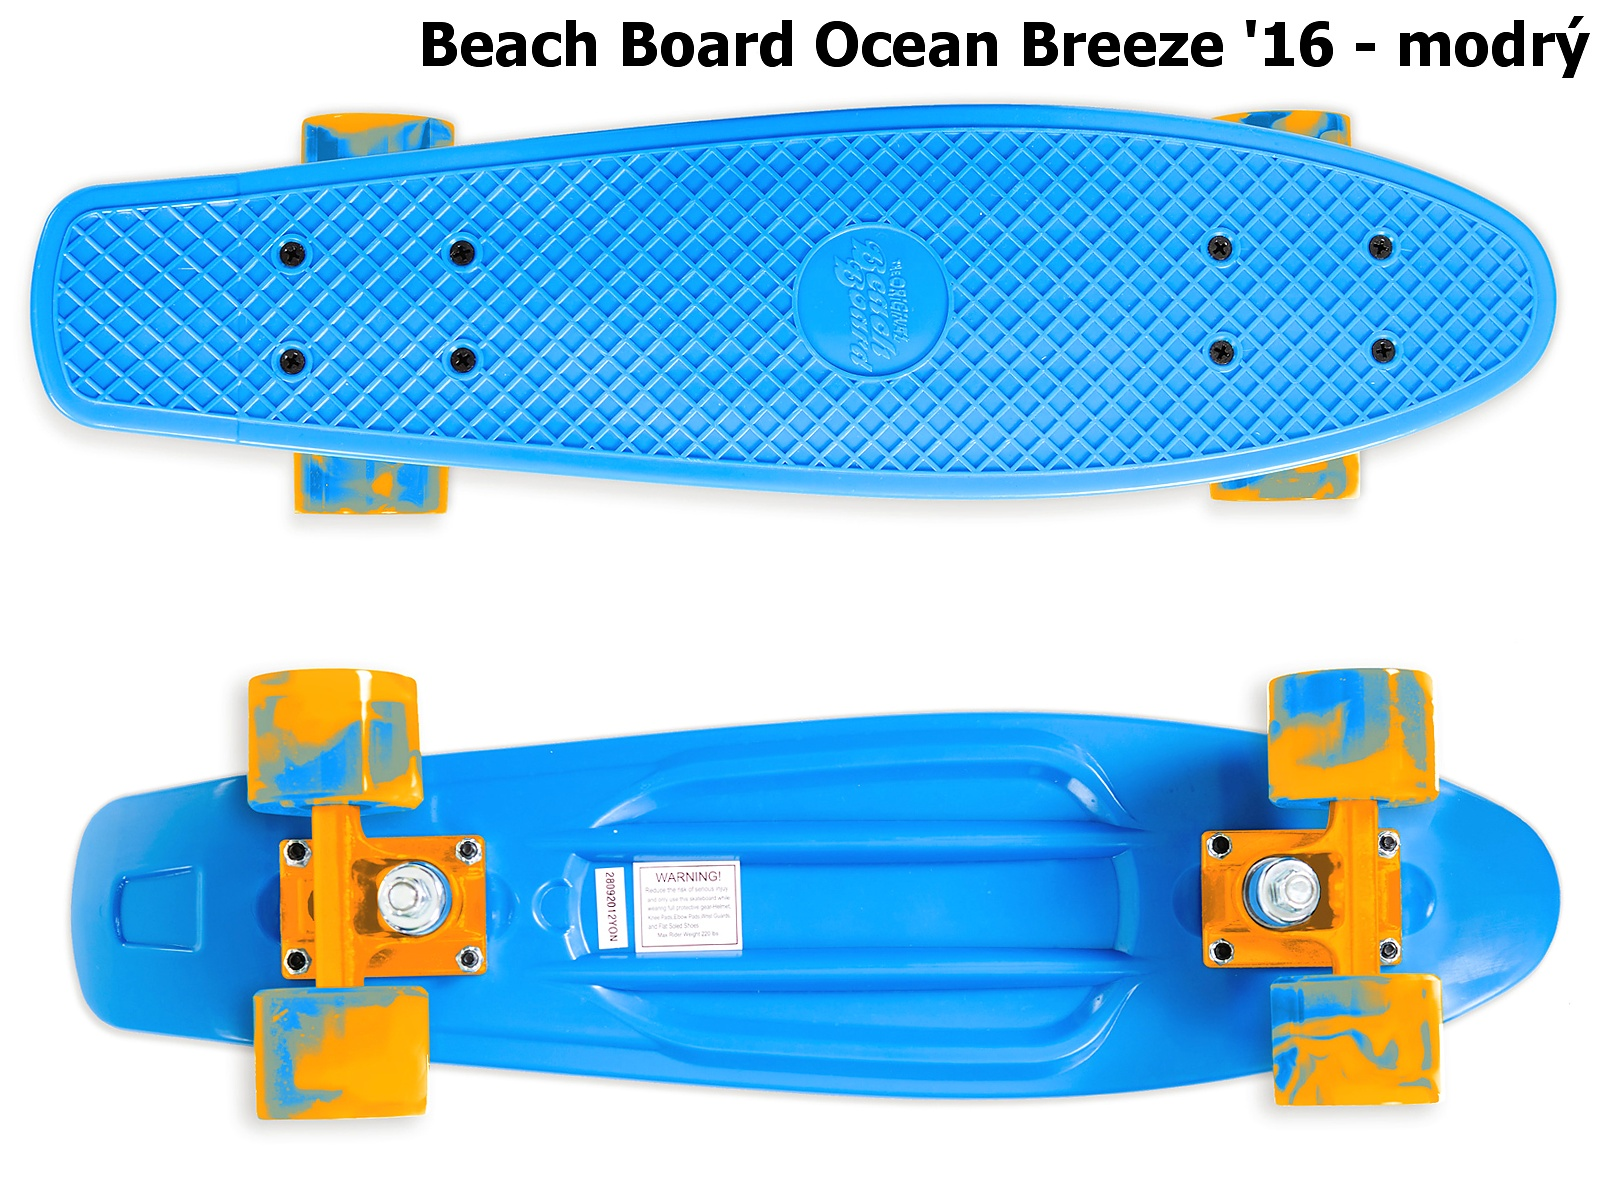 Skateboard STREET SURFING Beach Board Ocean Breeze - modrý